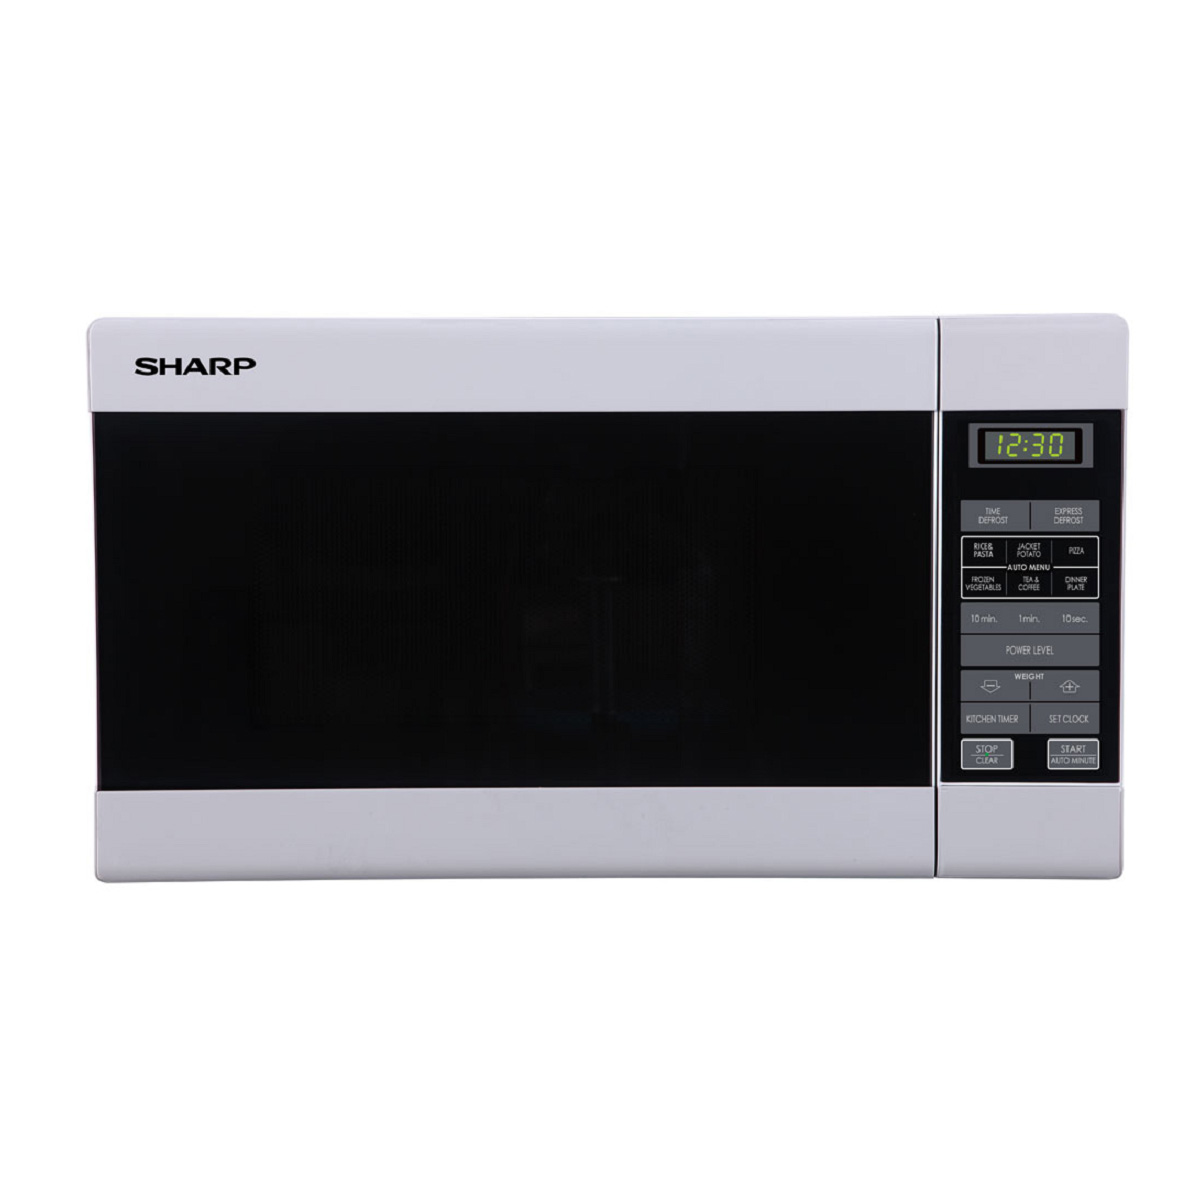 Sharp Freestanding Microwave R210DW